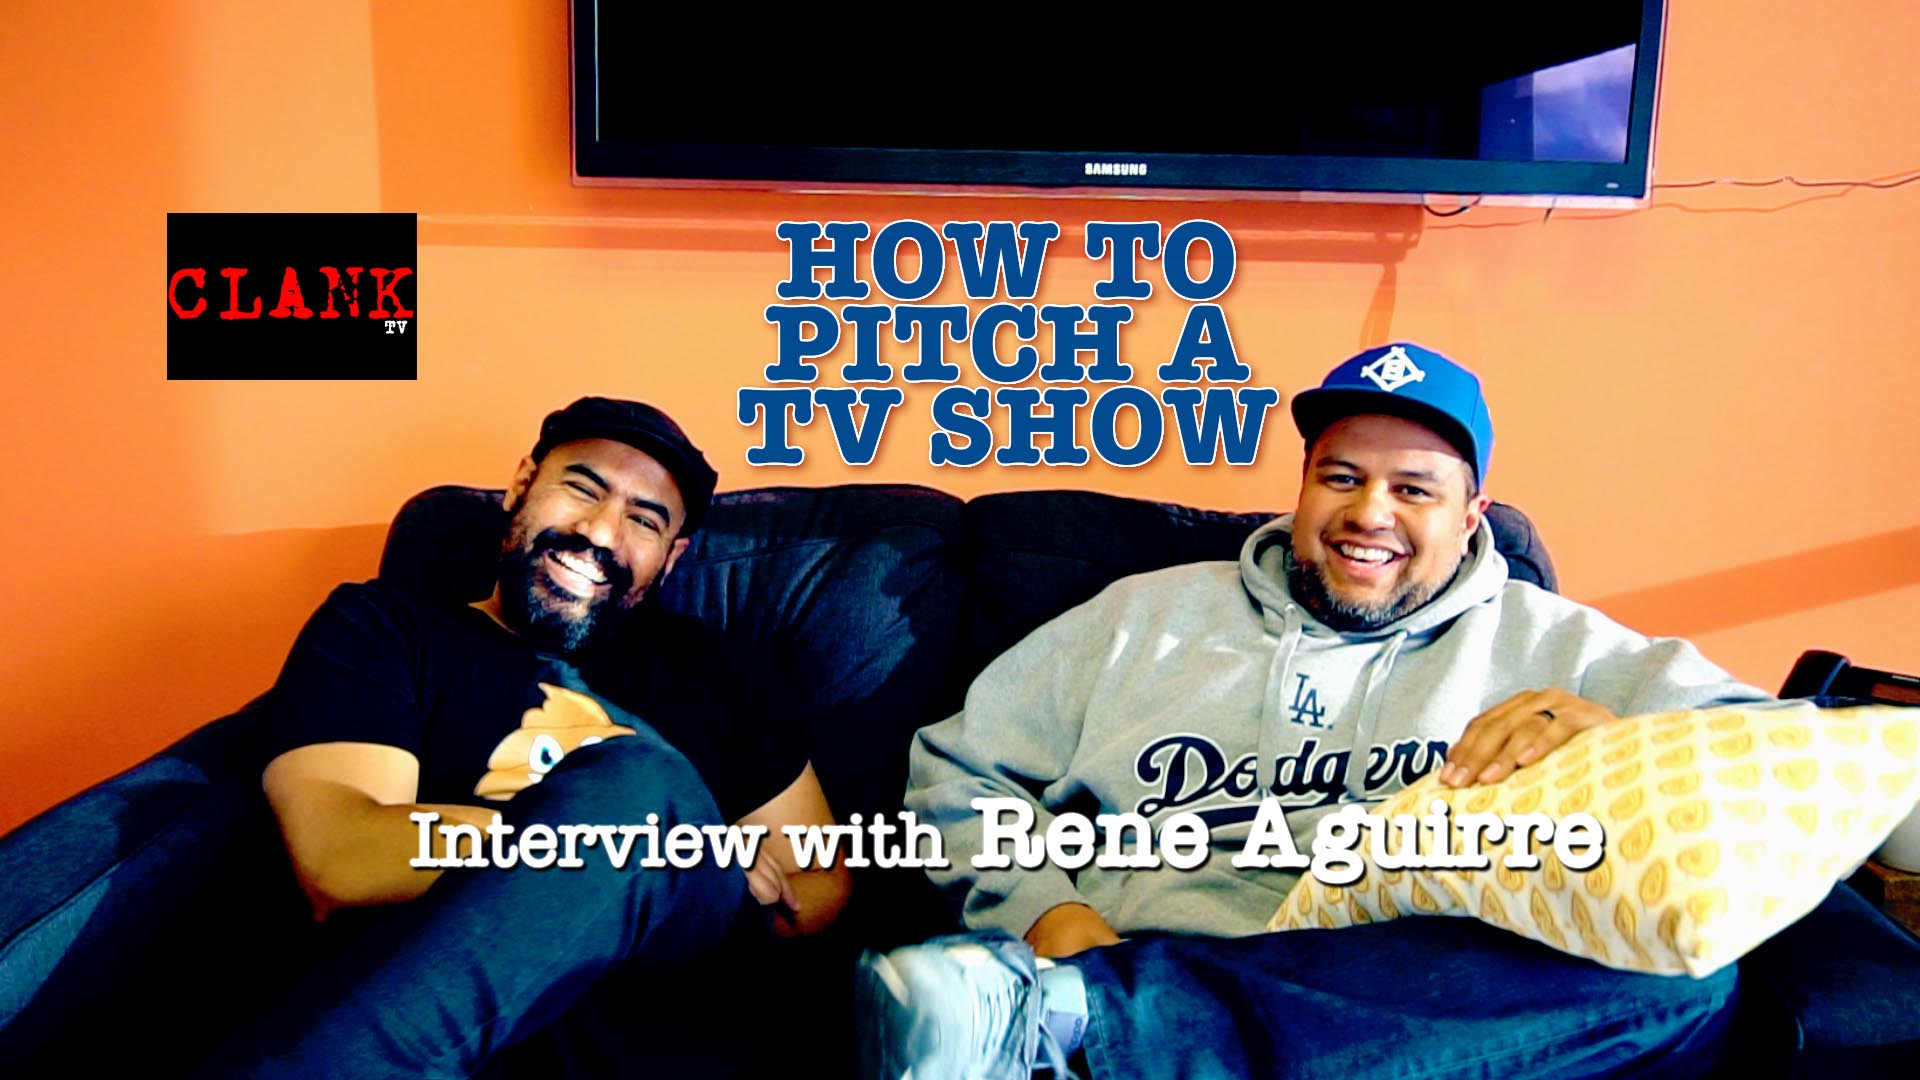 How To Pitch a TV Show (Things NOT to do) – Interview with Rene Aguirre